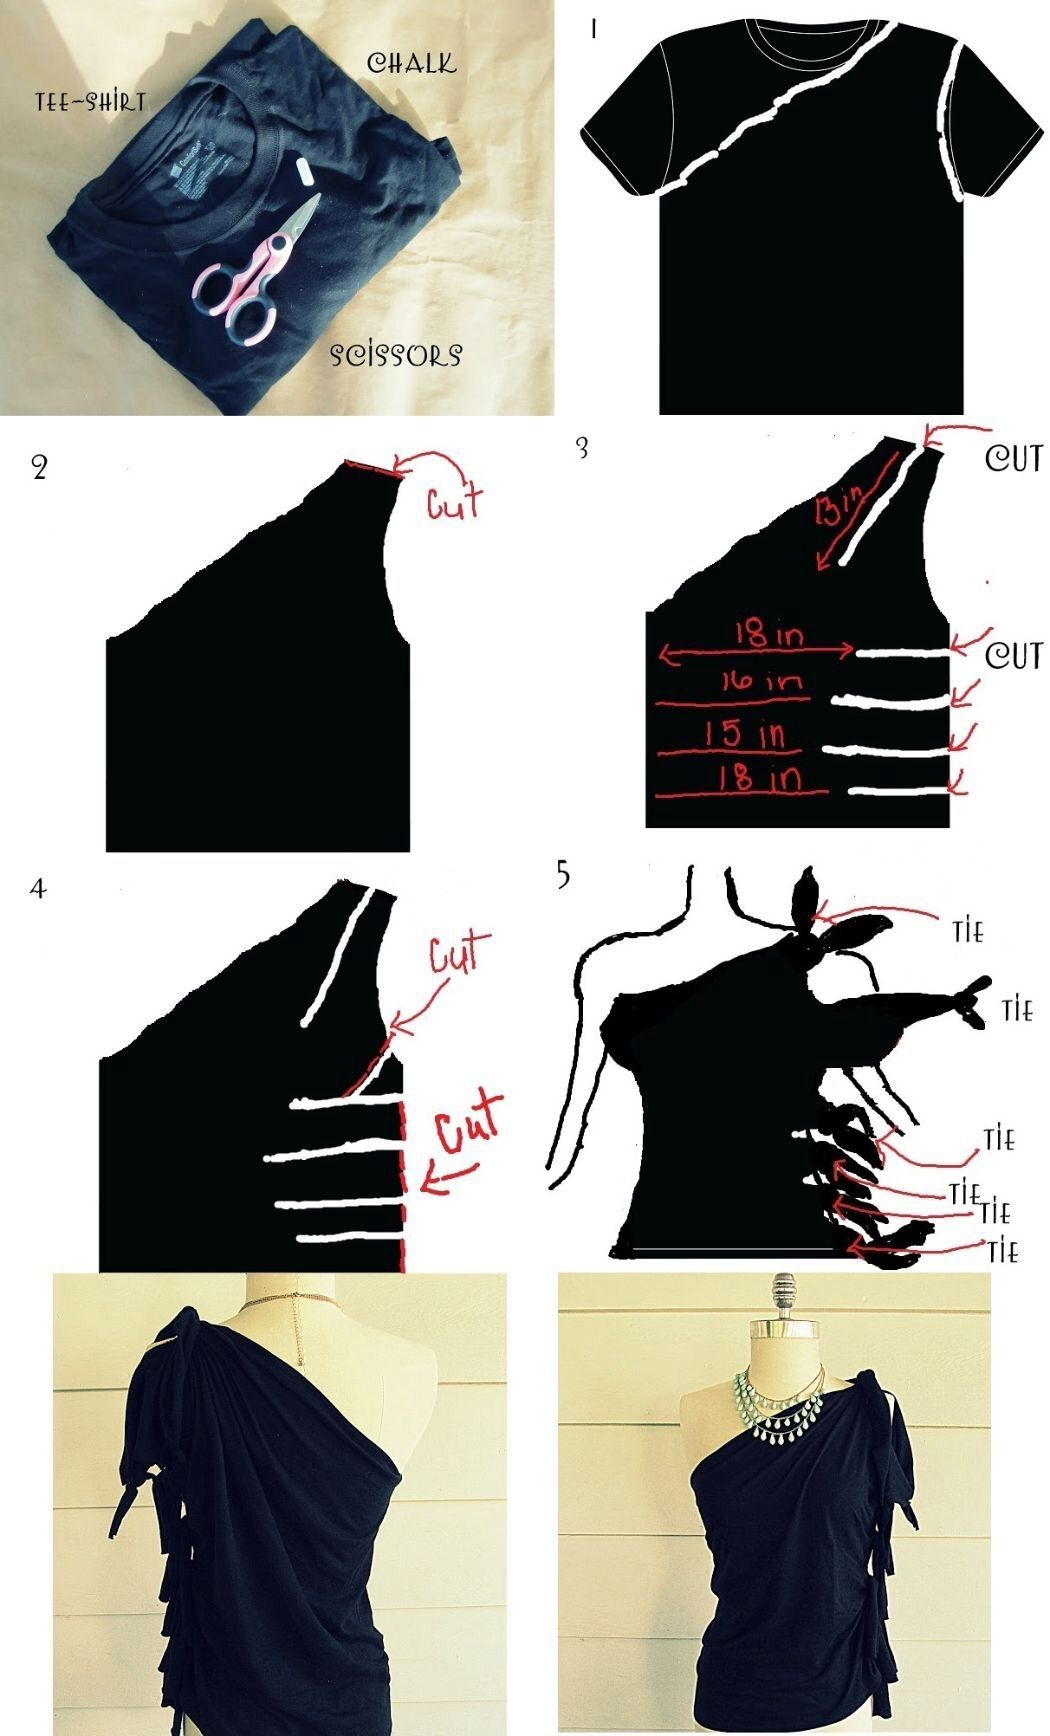 613f21740c1 DIY-clothes, how to change your old clothes into new, fashionable,pieces!  These are the best ideas we found on Pinterest! For more visit have2read  blog